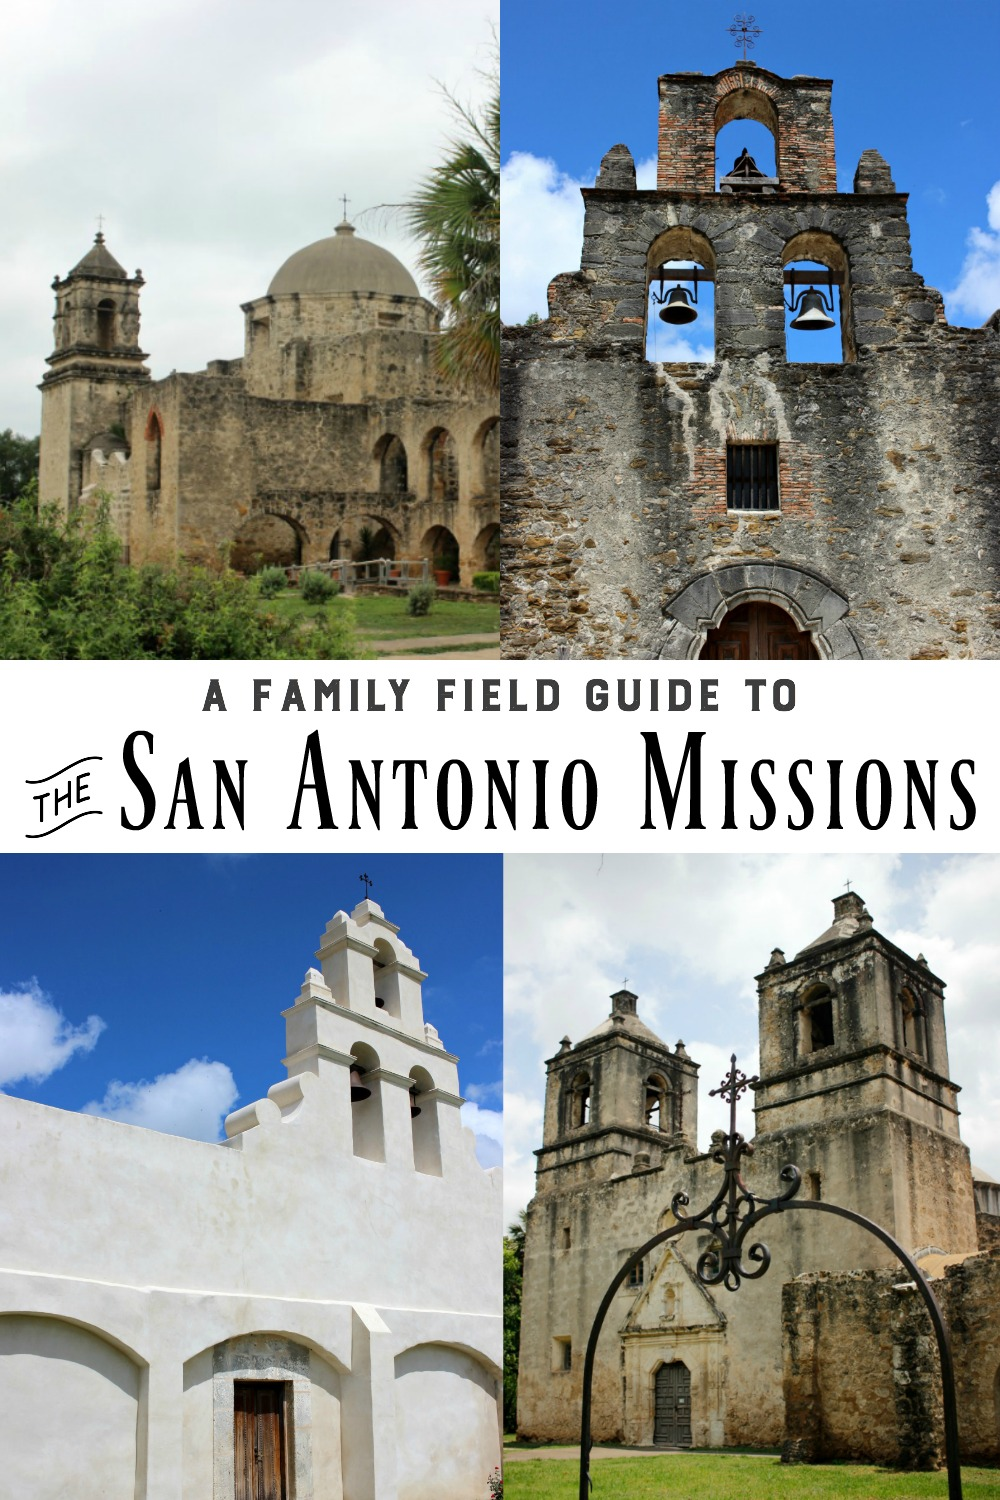 Love this guide to the San Antonio Missions! So many fun ideas for family who live in Texas or are traveling to San Antonio